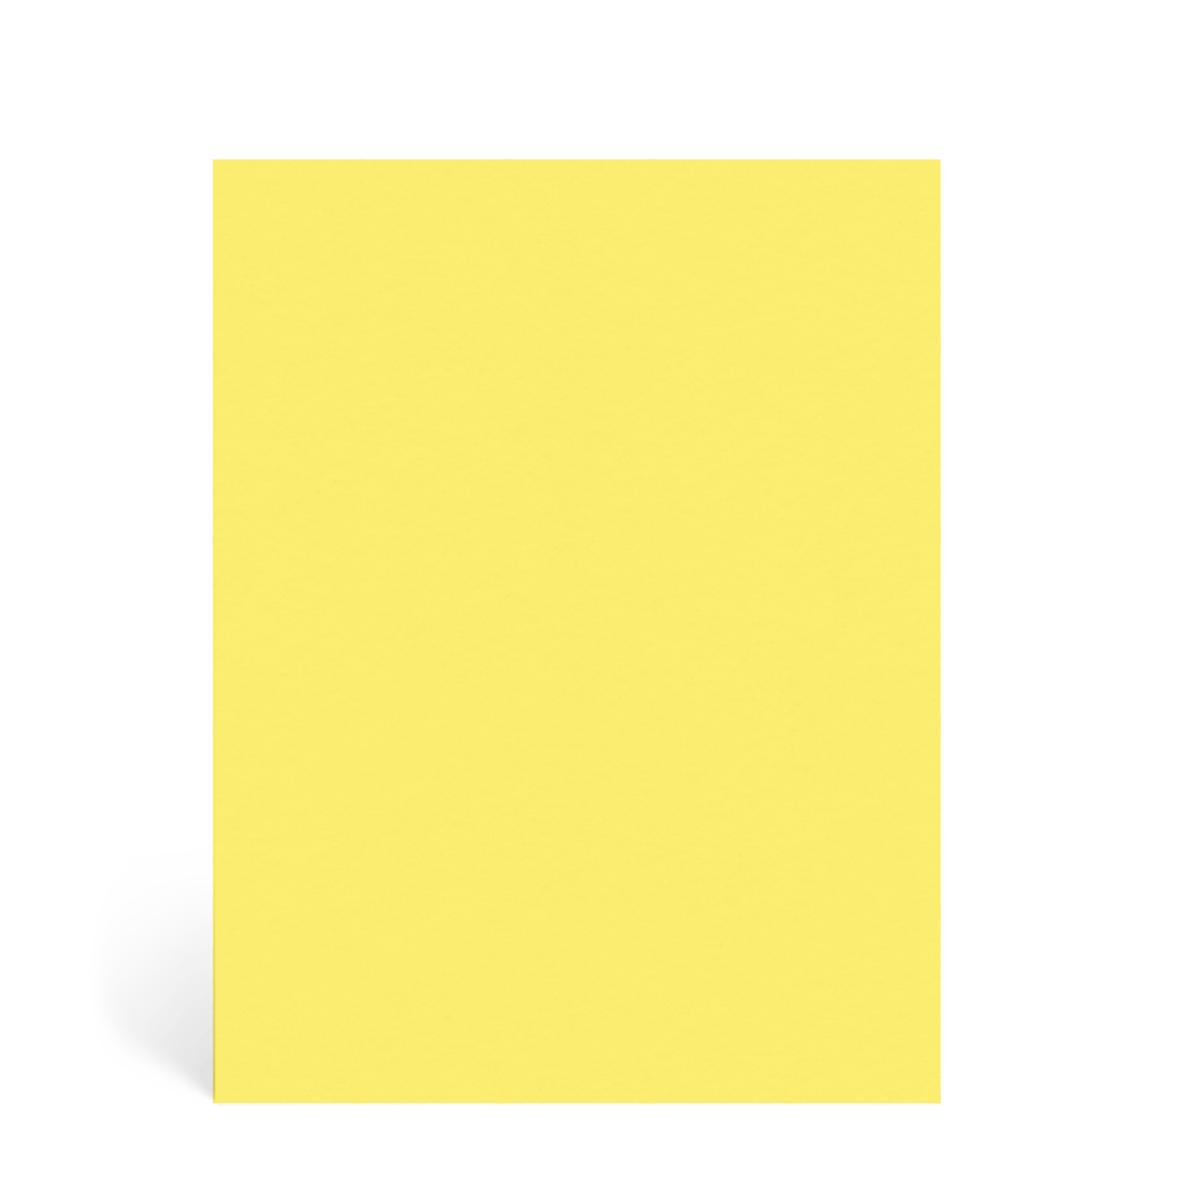 Https%3a%2f%2fwww.papier.com%2fproduct image%2f43003%2f31%2fcolour block 10963 rueckseite 1533907984.png?ixlib=rb 1.1